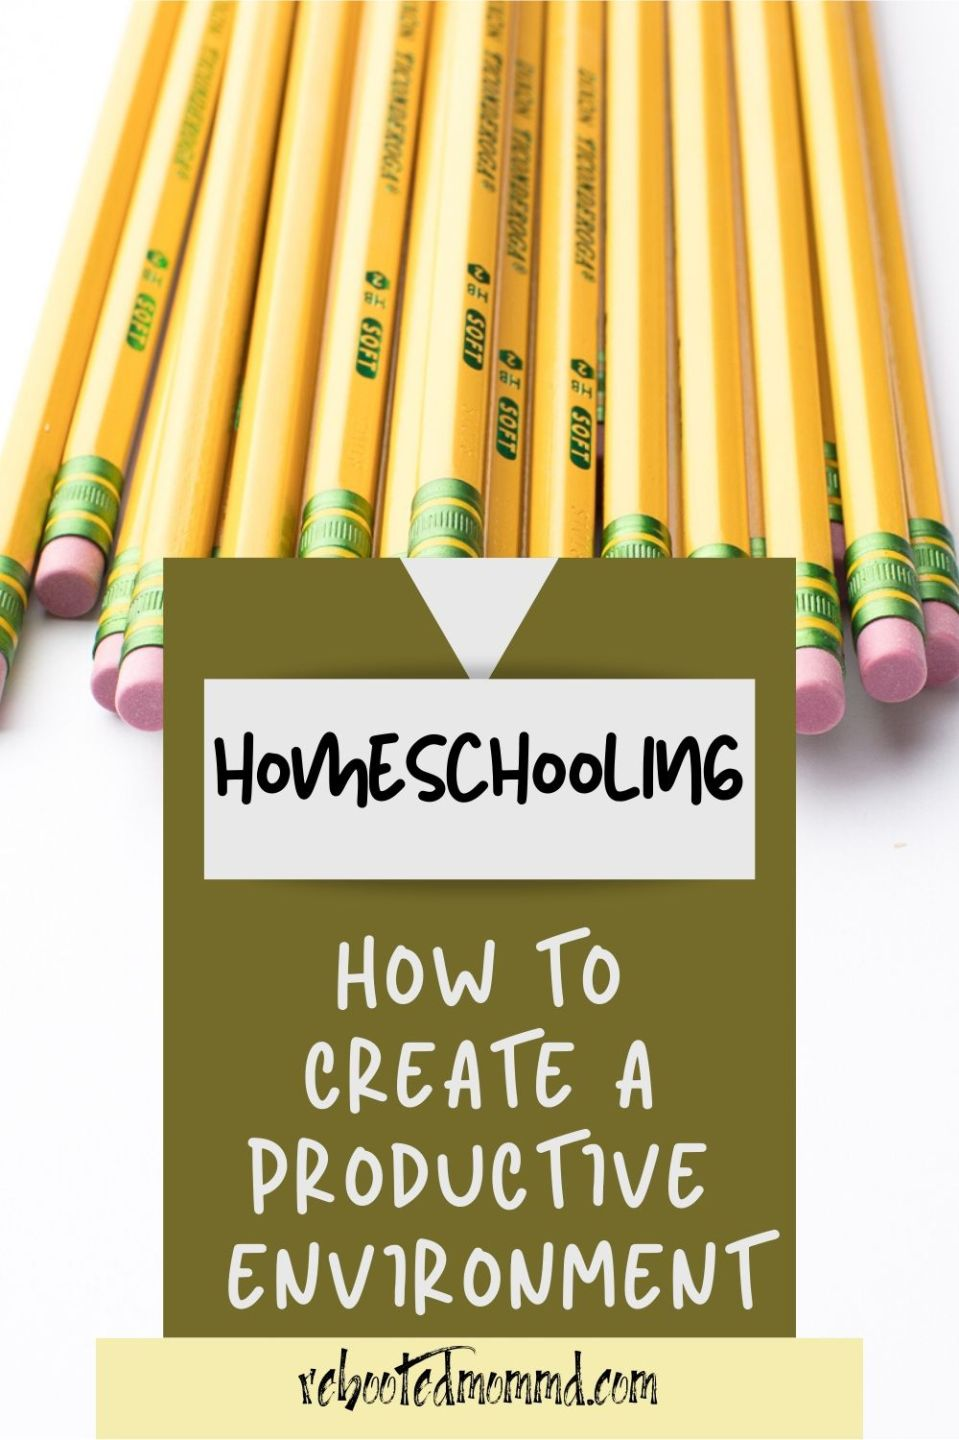 Organize Your Home to Be a Productive Learning Environment